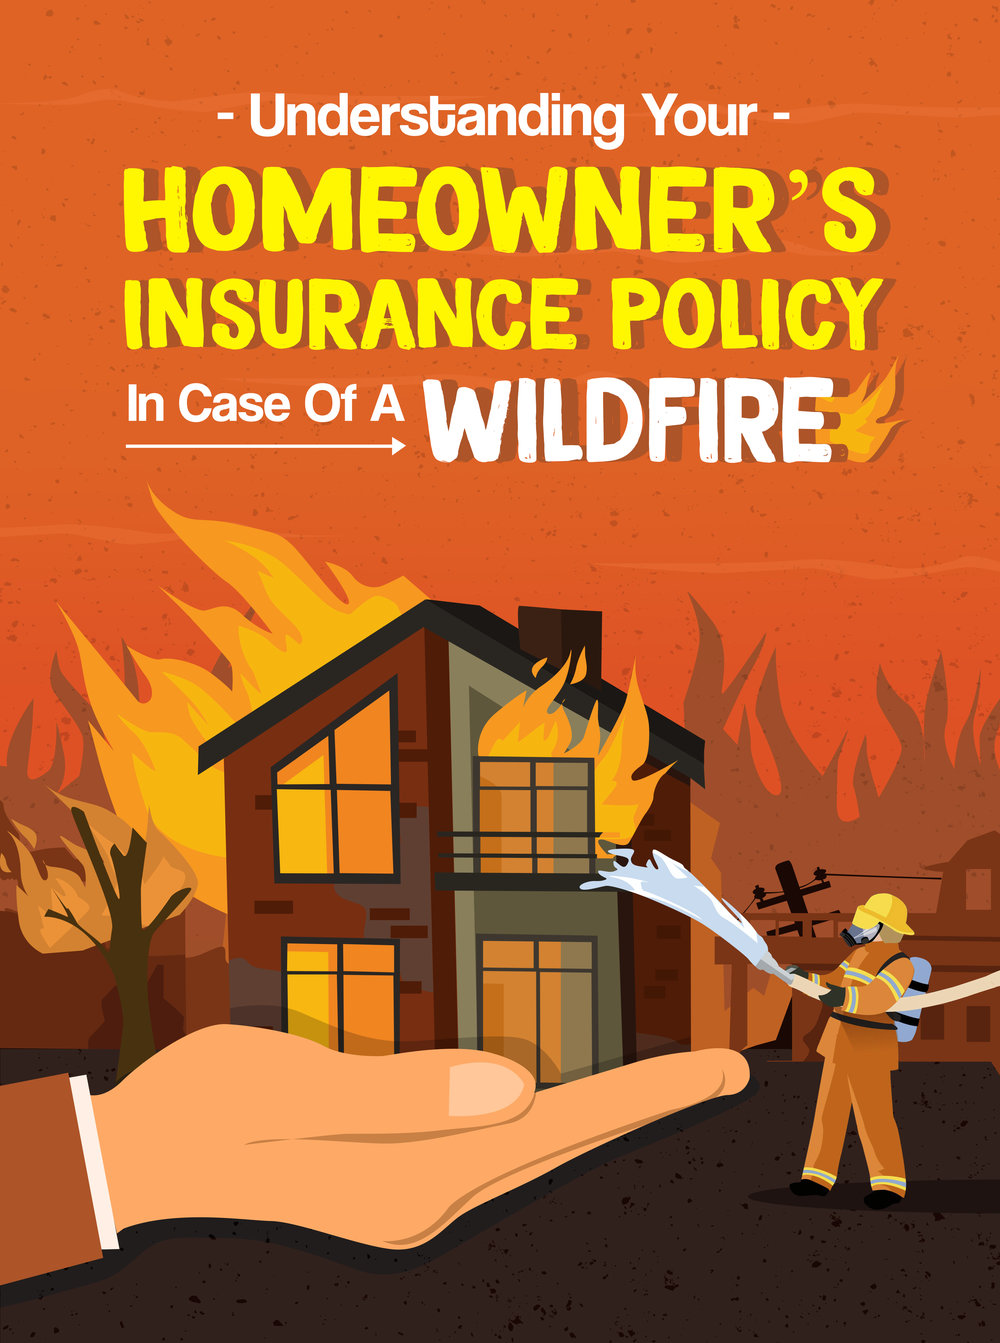 Understanding Your Homeowner's Insurance Policy in Case of a Wildfire